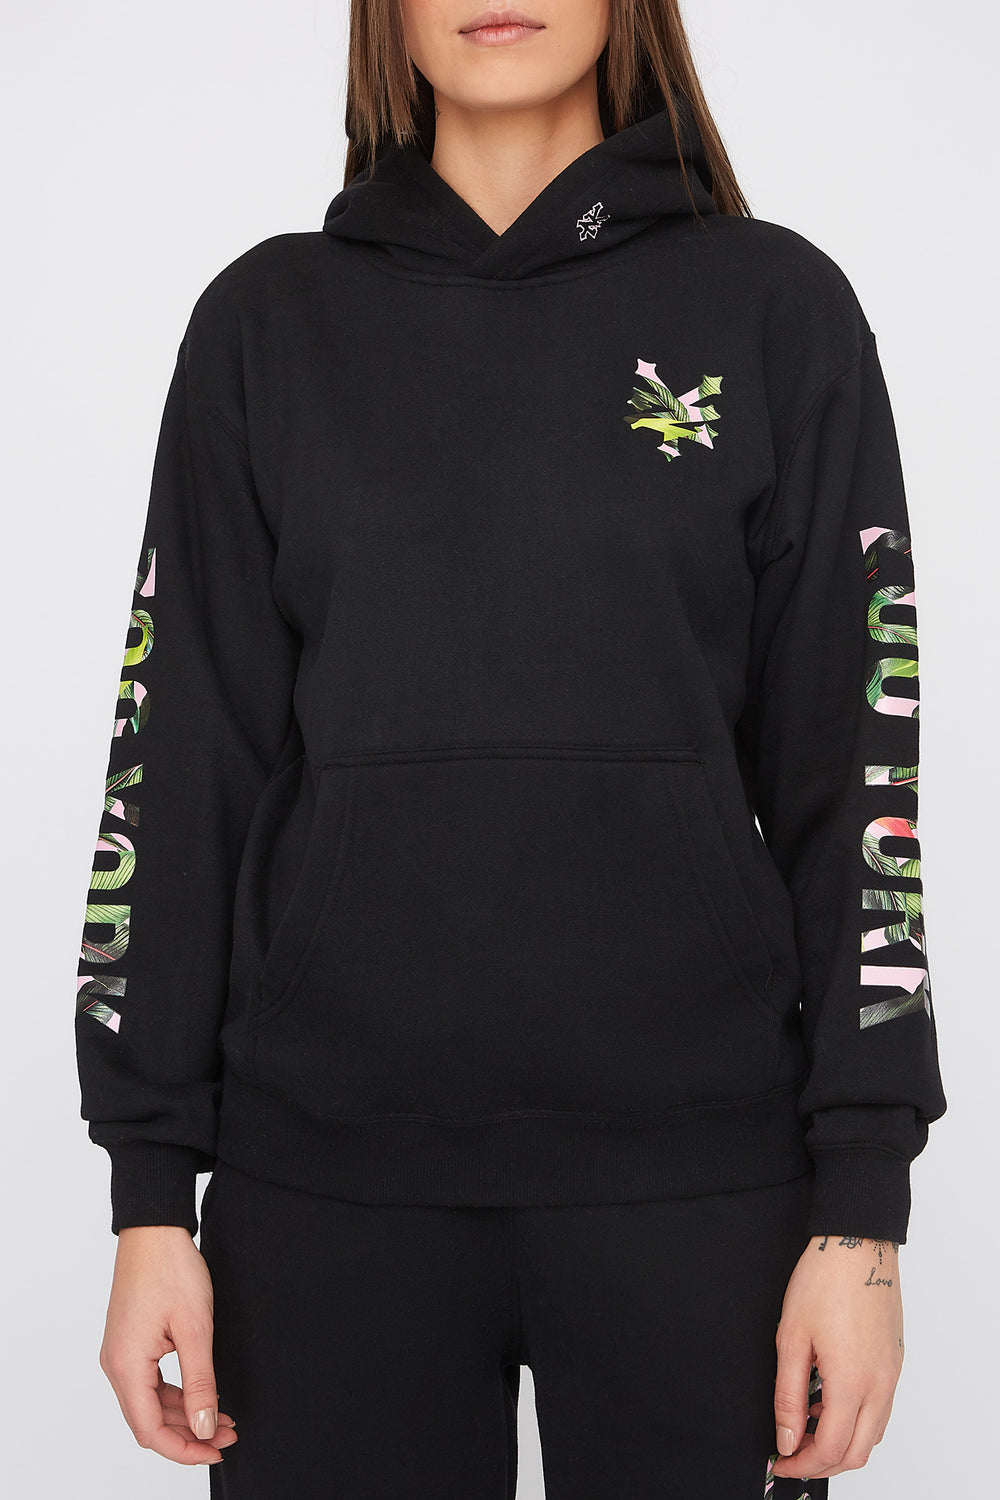 Zoo York Womens Tropical Logo Hoodie Black